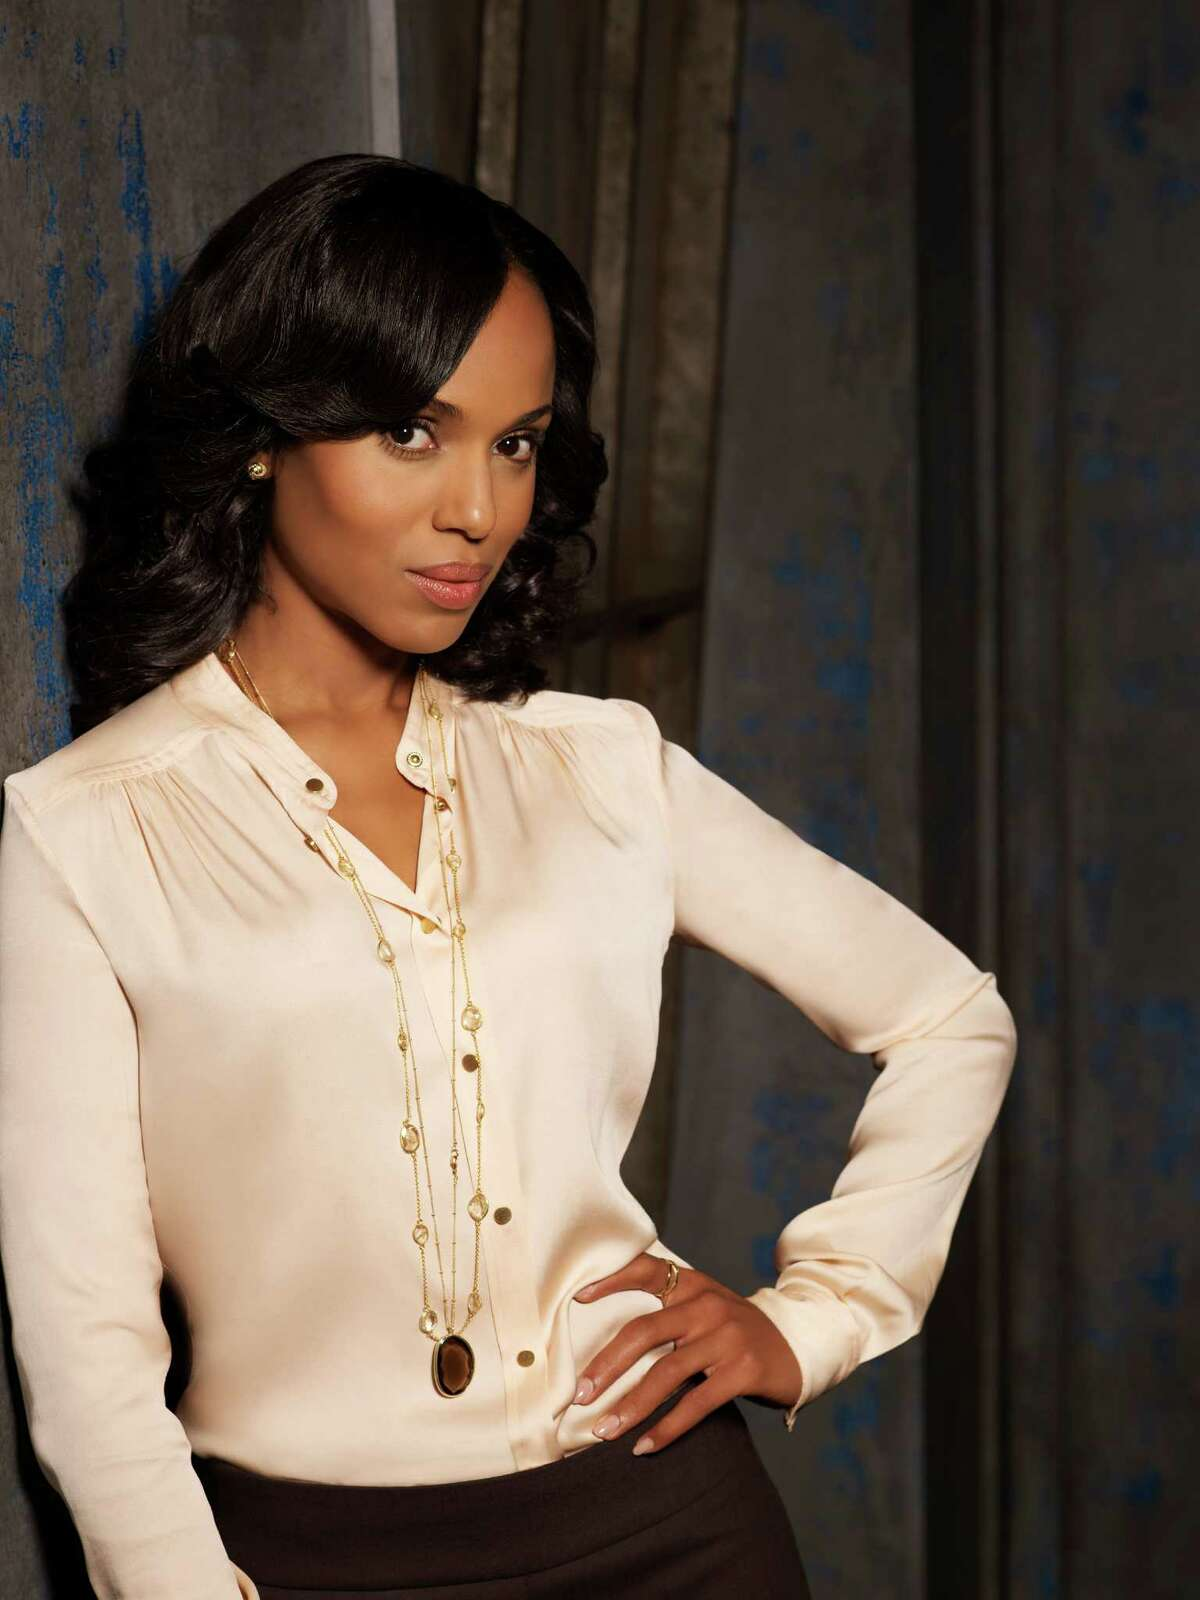 Olivia Pope Last season was one of the hardest on our favorite white-hat crusader. She's kidnapped, traumatized and auctioned off to terrorists. Her on-again-off-again relationship with both Fitz and Jake is mostly off and she gets duped by a one-night stand who turns out to have been working with her father. (Is there anything her dad won't do?)